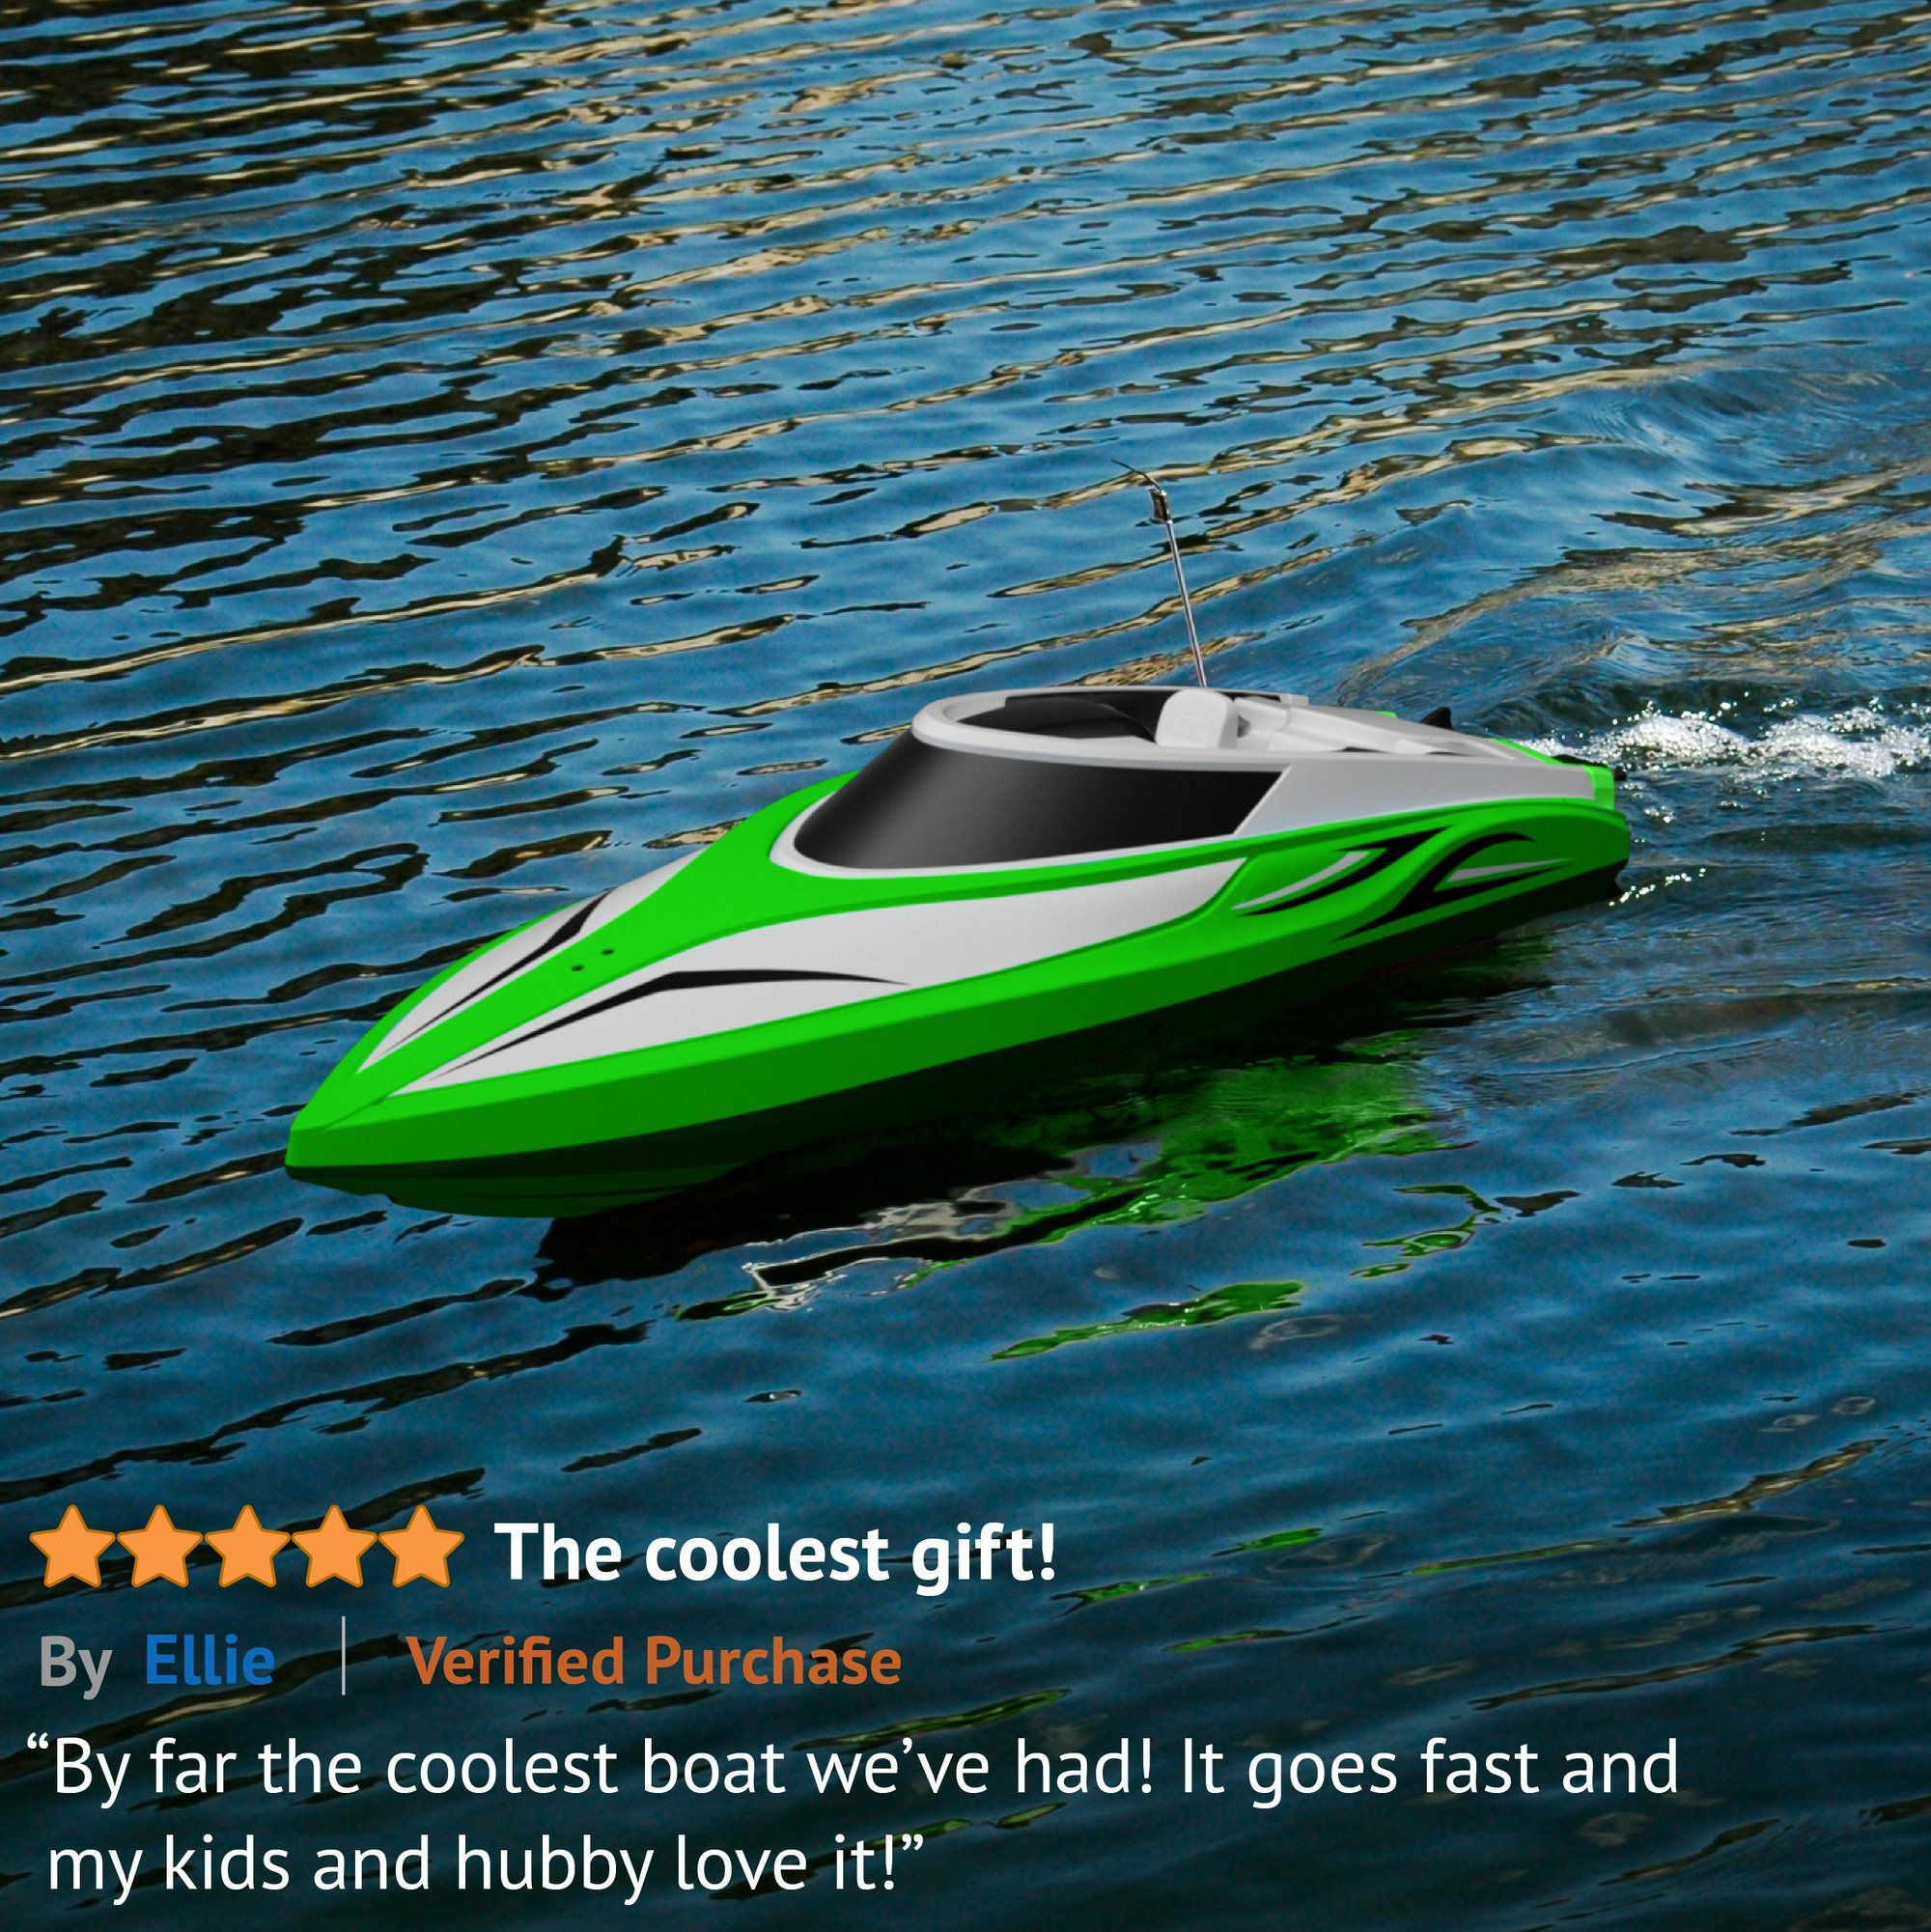 H102 Velocity Fast Remote Control Boat Green Make Waves